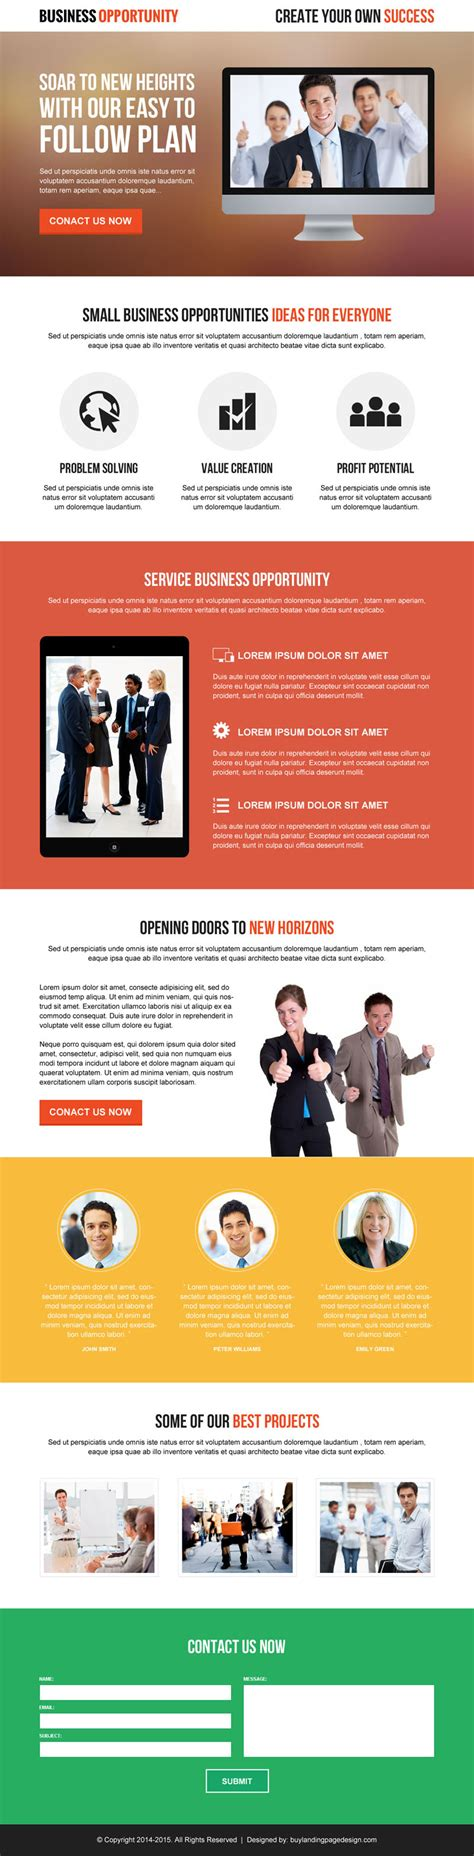 business page design templates best responsive landing page designs 2014 to capture leads